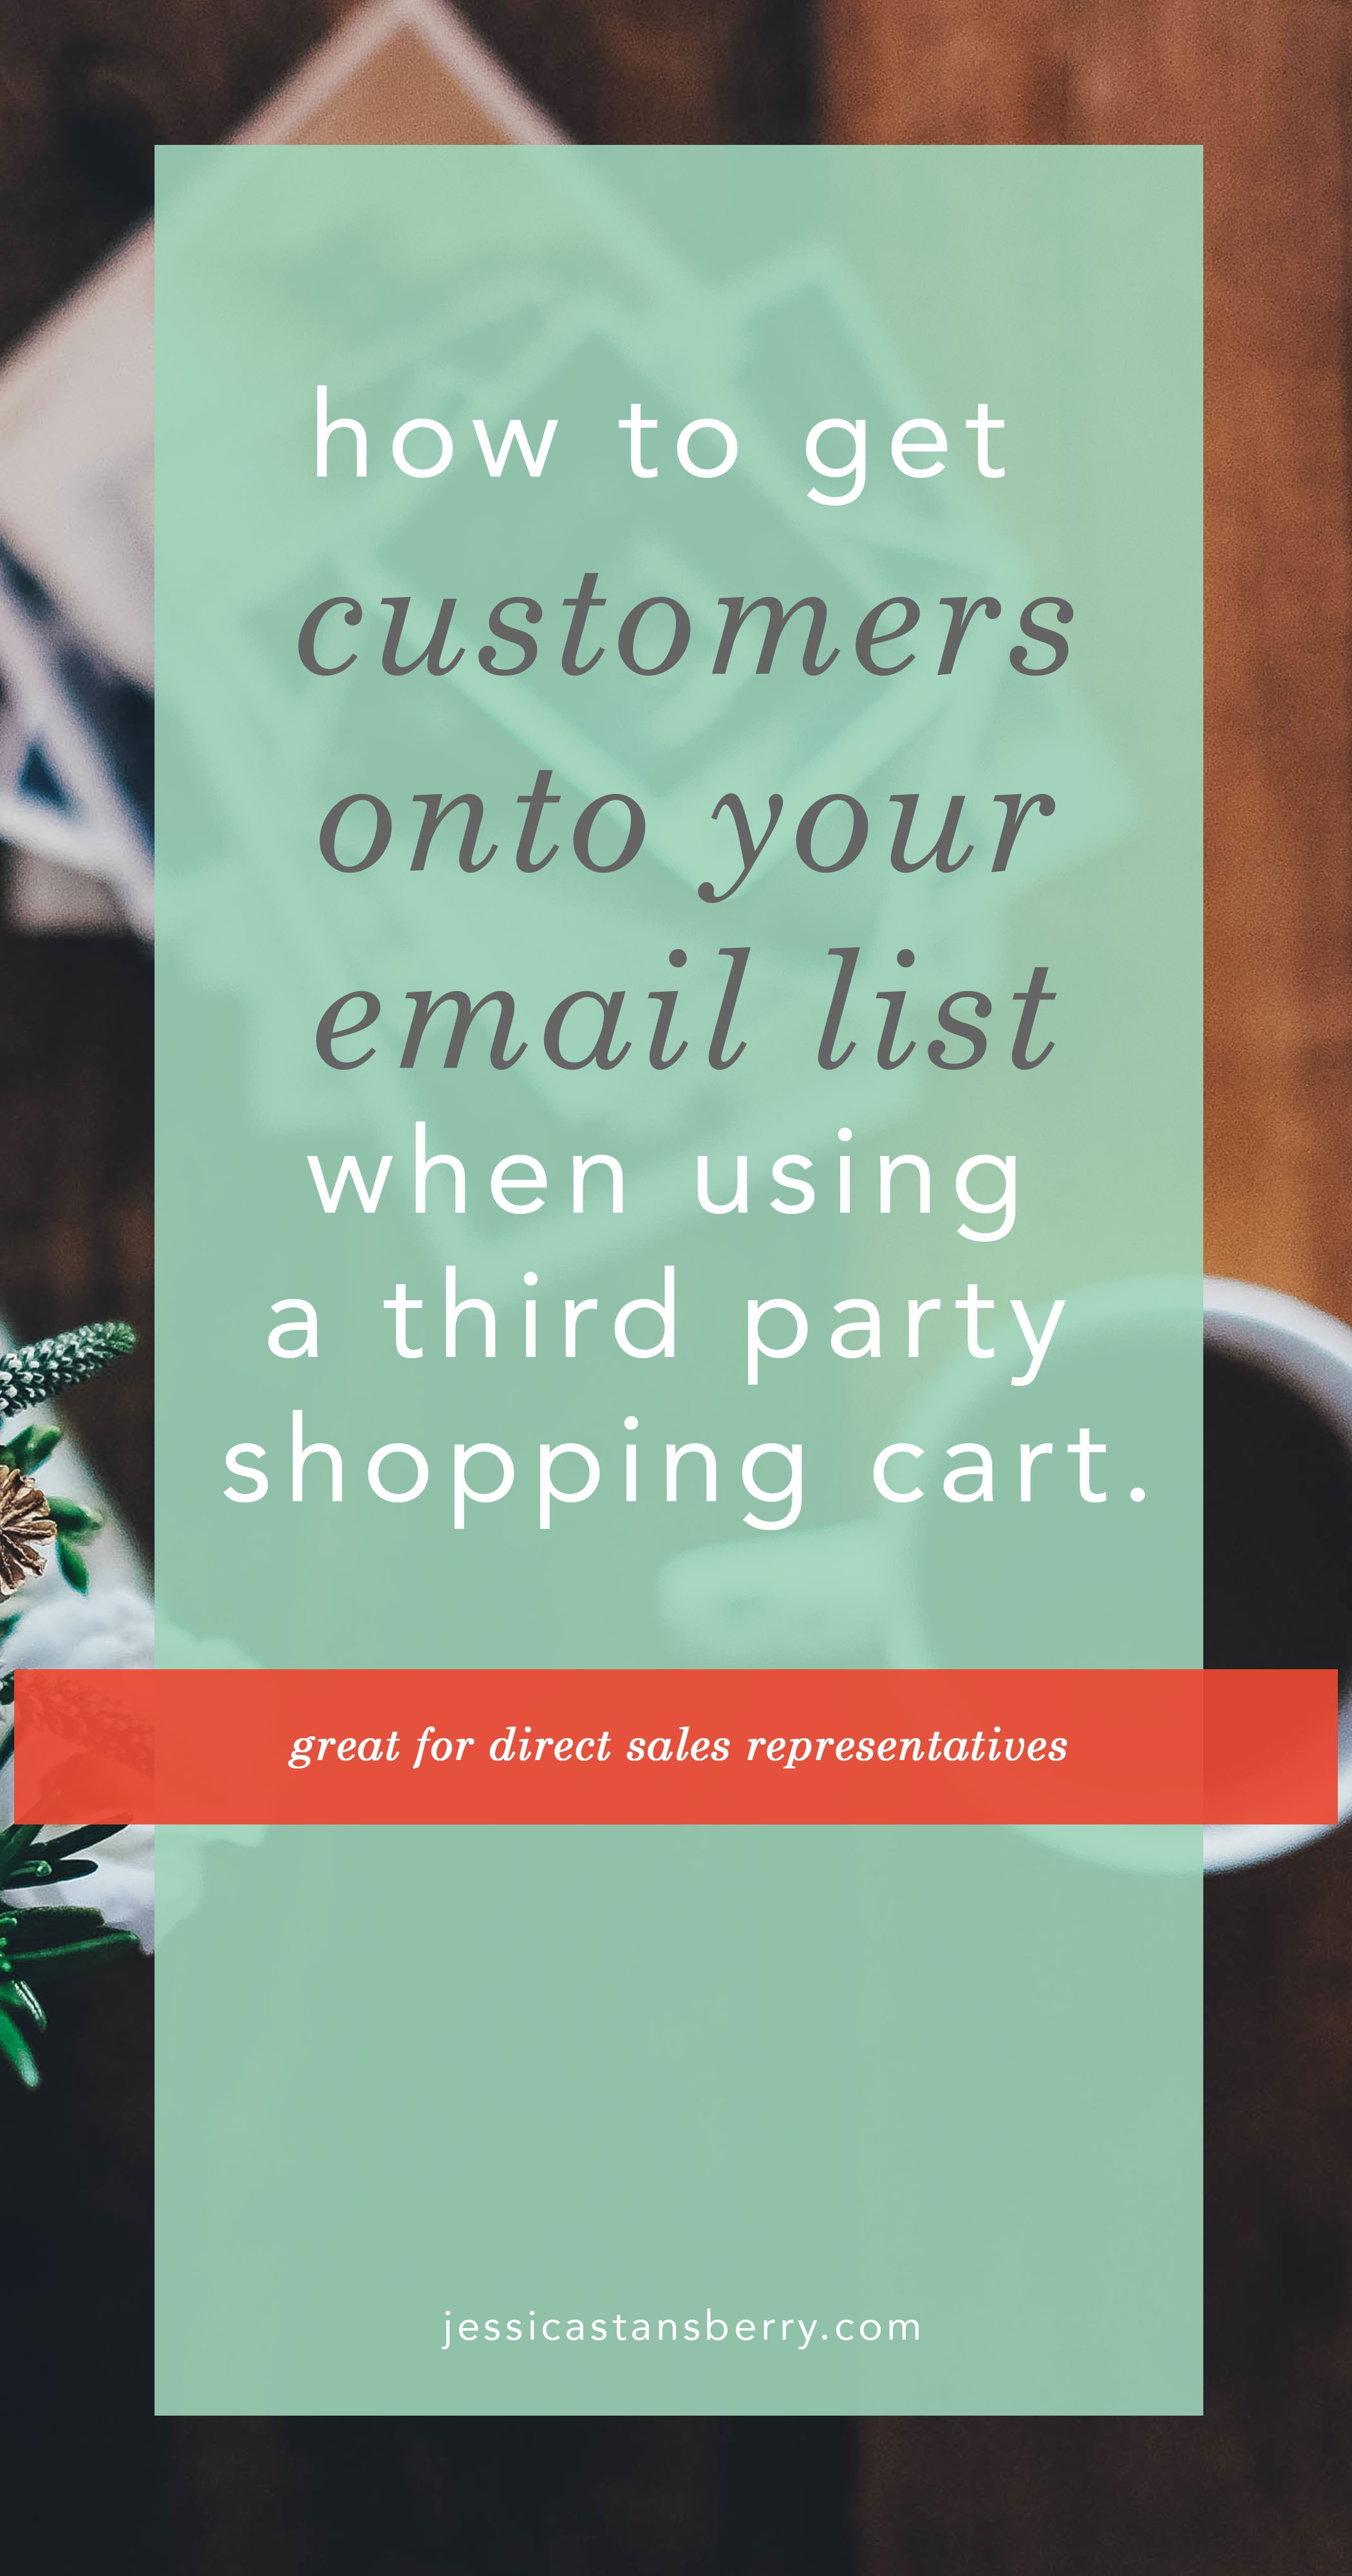 getting direct sales customers onto email list automatically | jessicastansberry.com